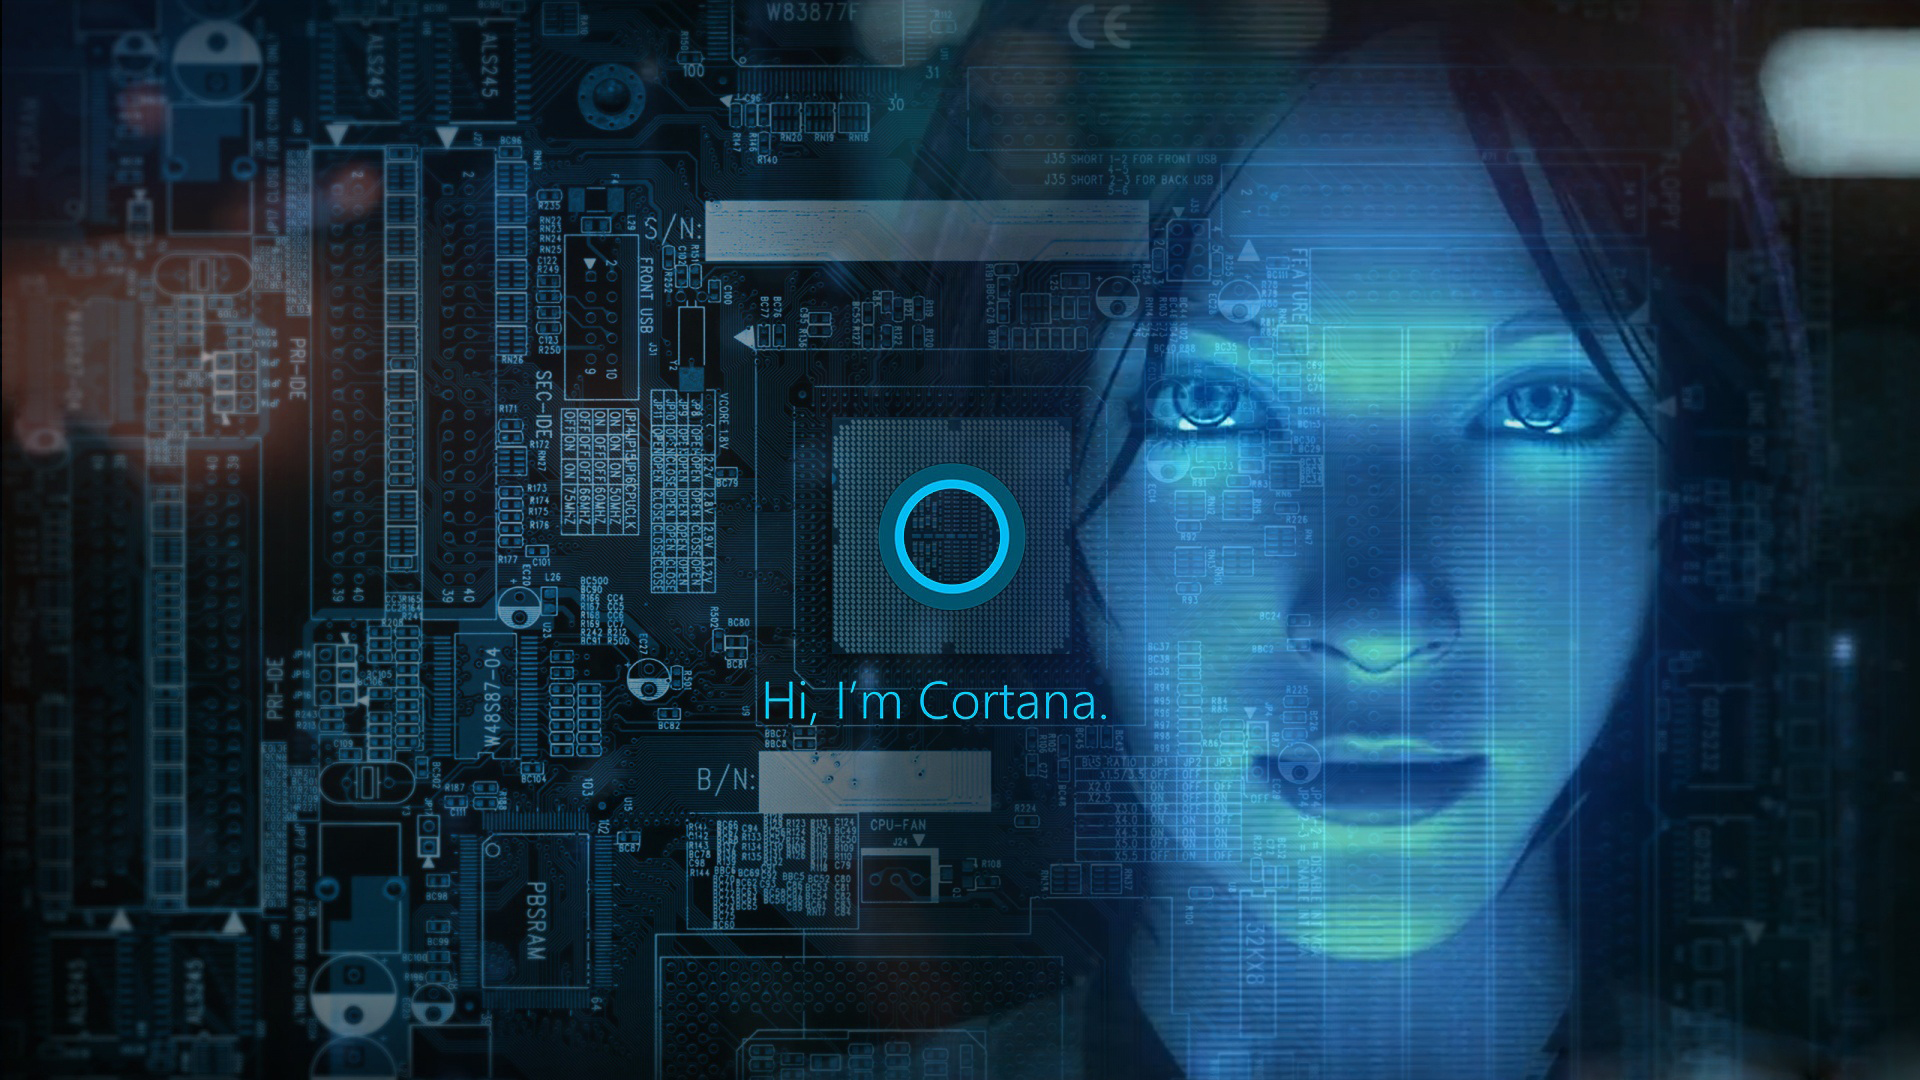 Windows Phone Voice Hi Im Cortana wallpaper Best HD Wallpapers 1920x1080